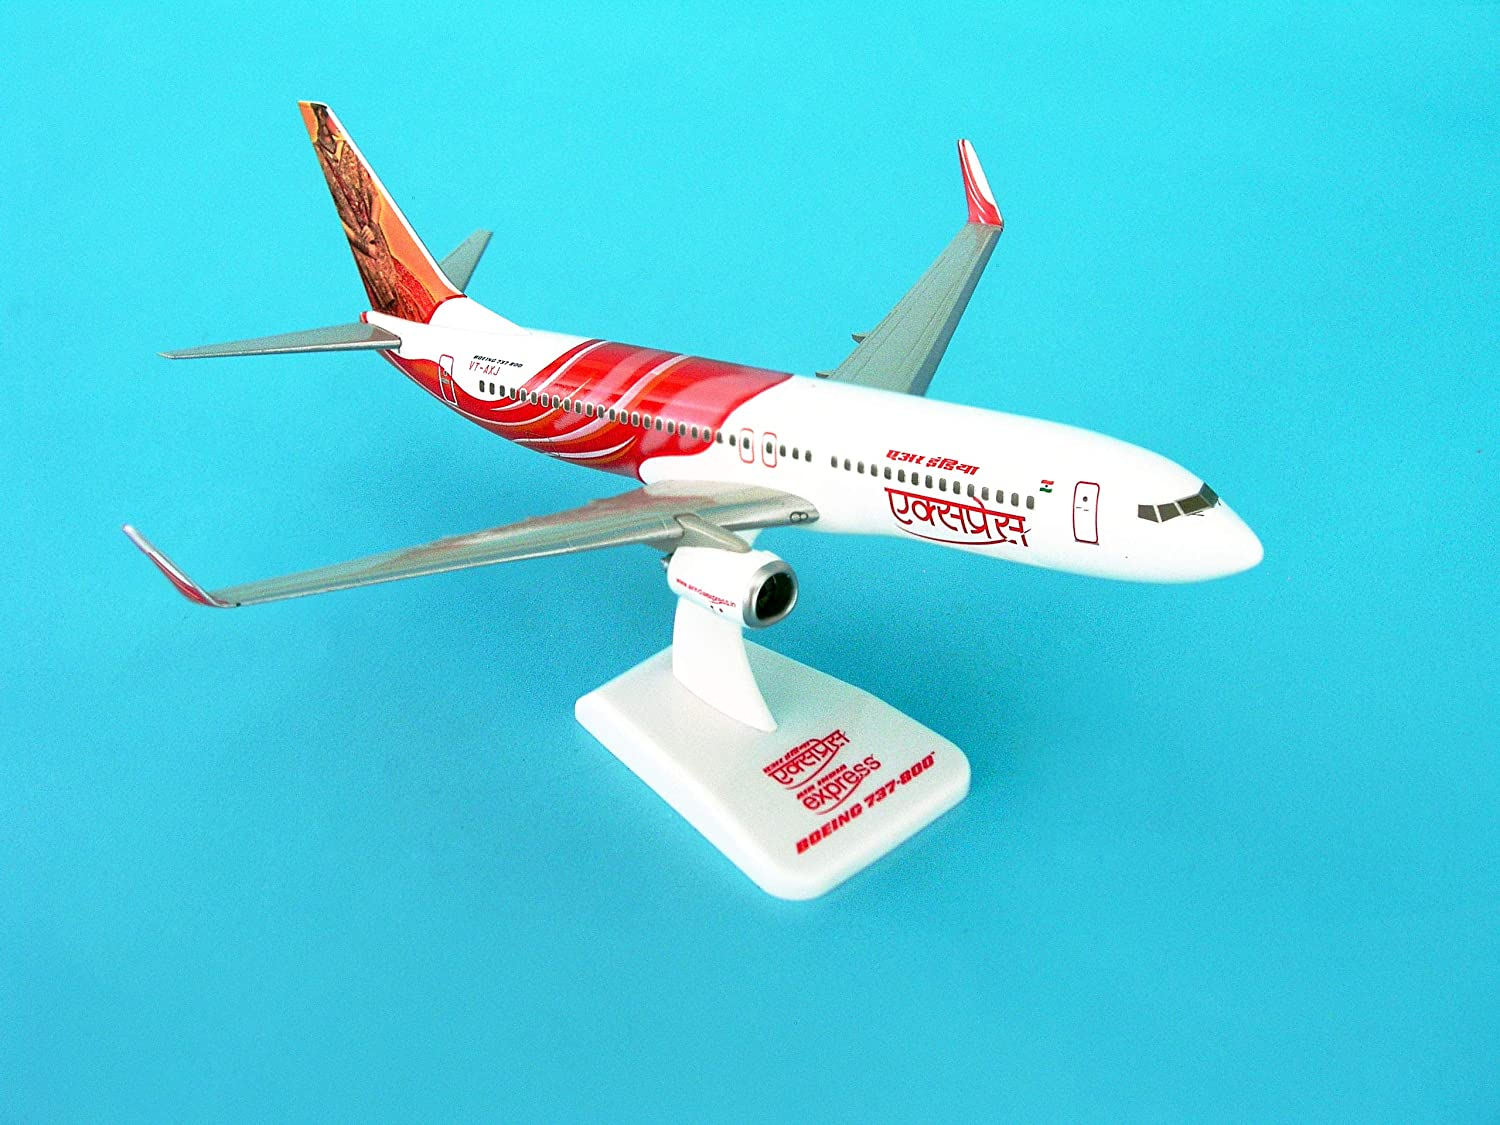 Daron HG3800GG Hogan Air India Express 737-800W mit Getriebe - Reg No VT-AXG